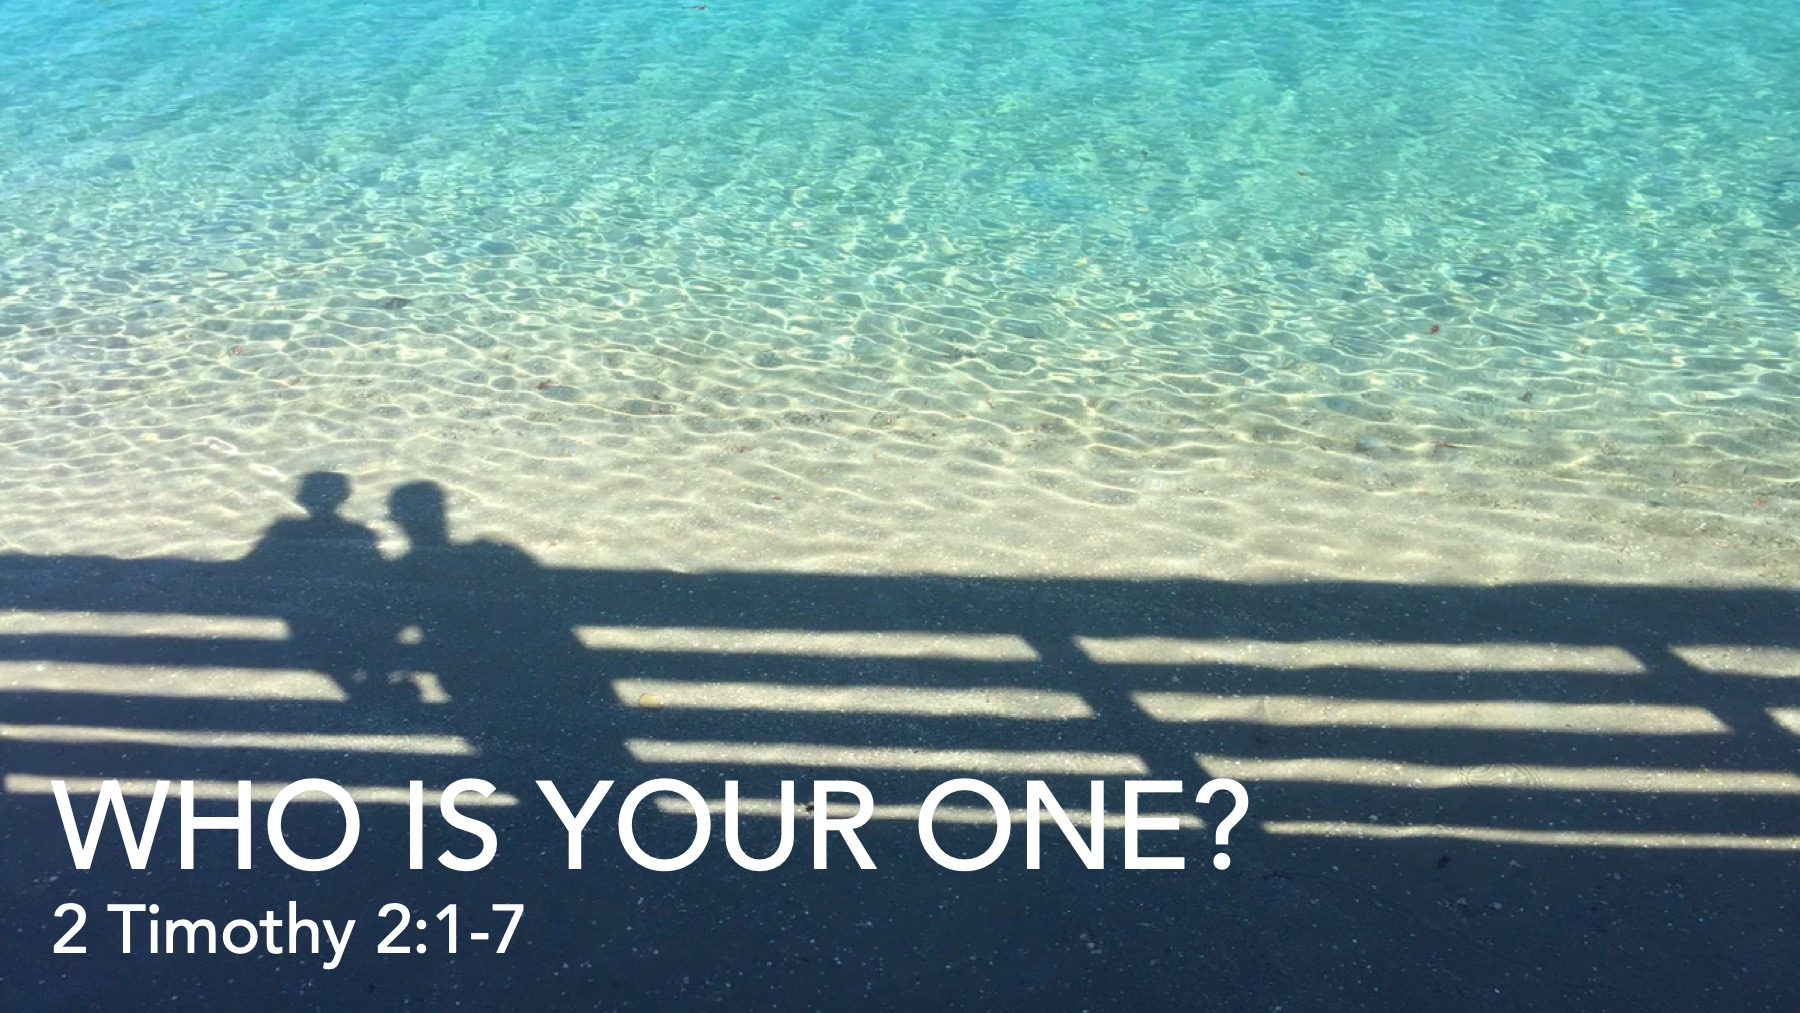 Who Is Your One?